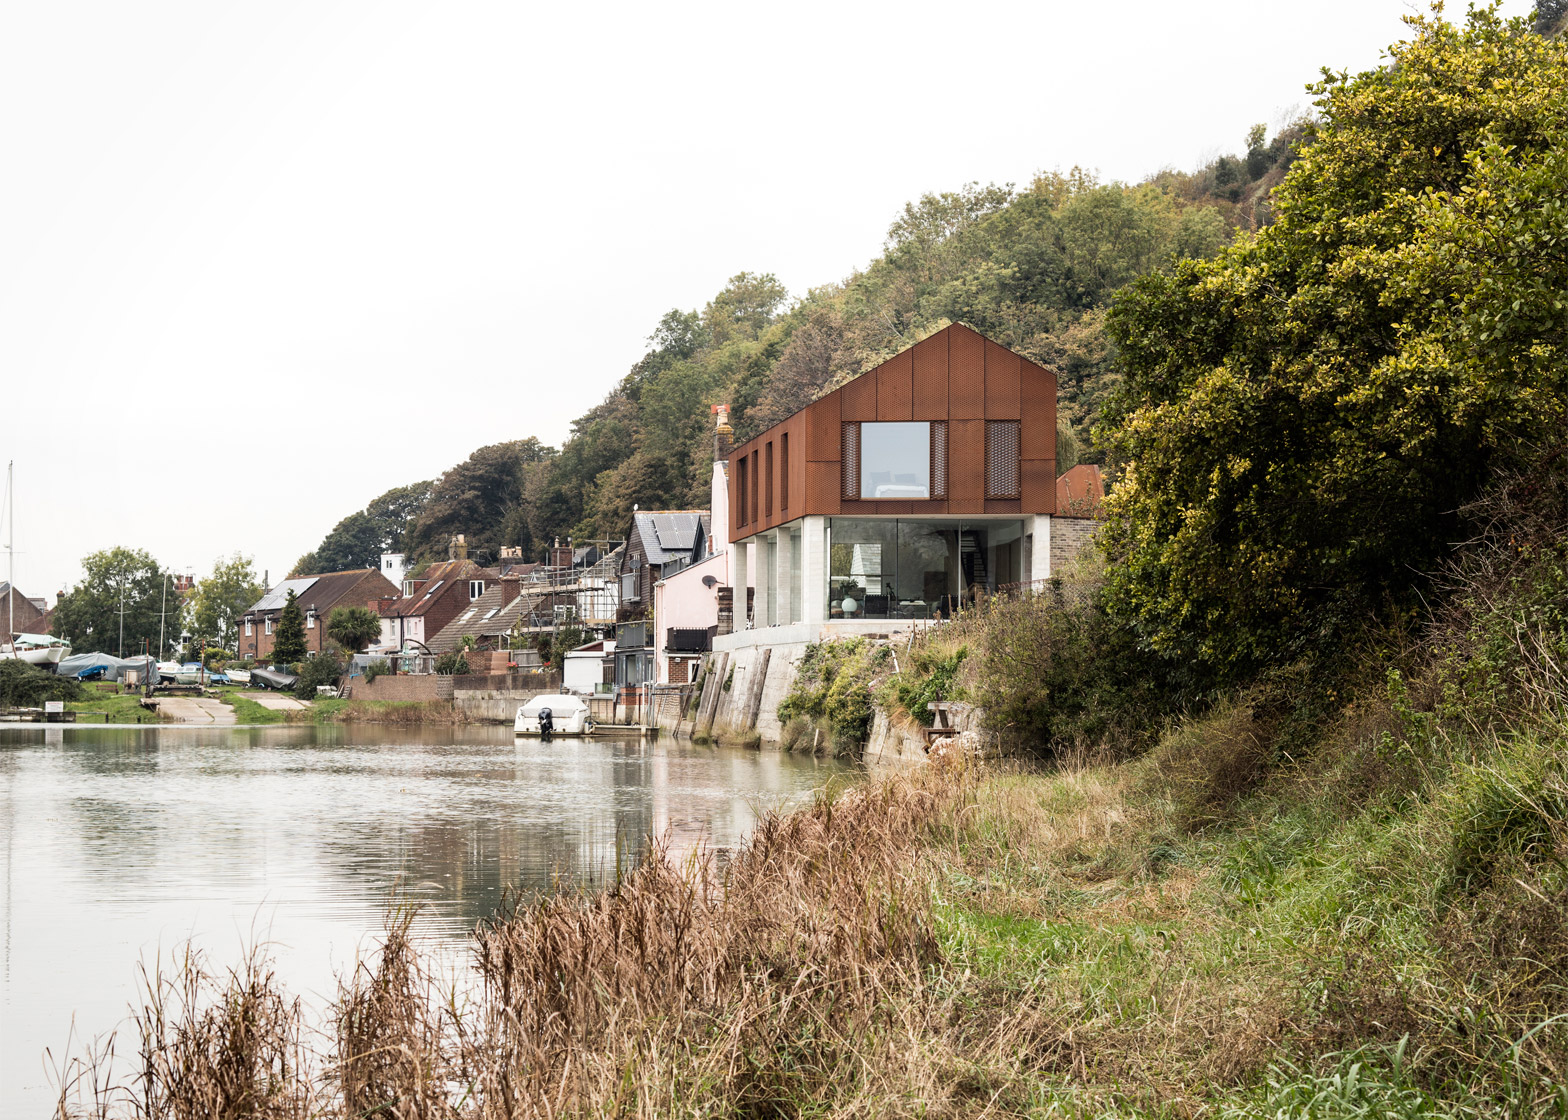 South Street by Sandy Rendel Lewes Architects in Lewes, East Sussex